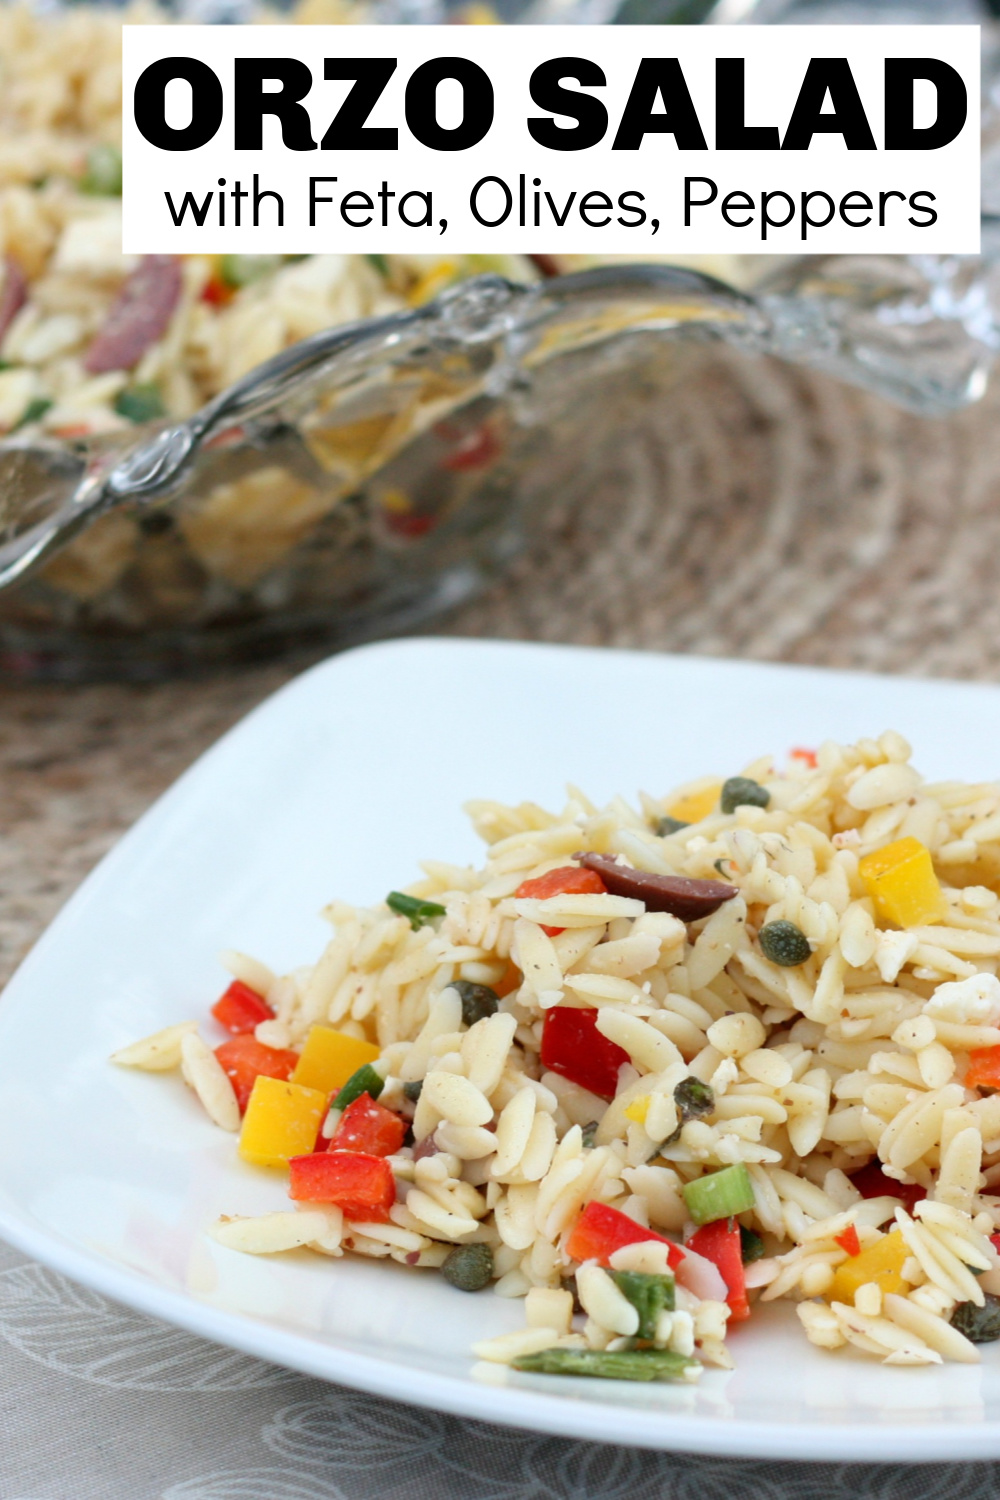 Orzo salad is a perfect side dish for a picnic or dinner party. Tangy feta, olives, and peppers are colorful and add great flavor.  #salad #summersalad #orzosalad #vegetariansalad via @spaula